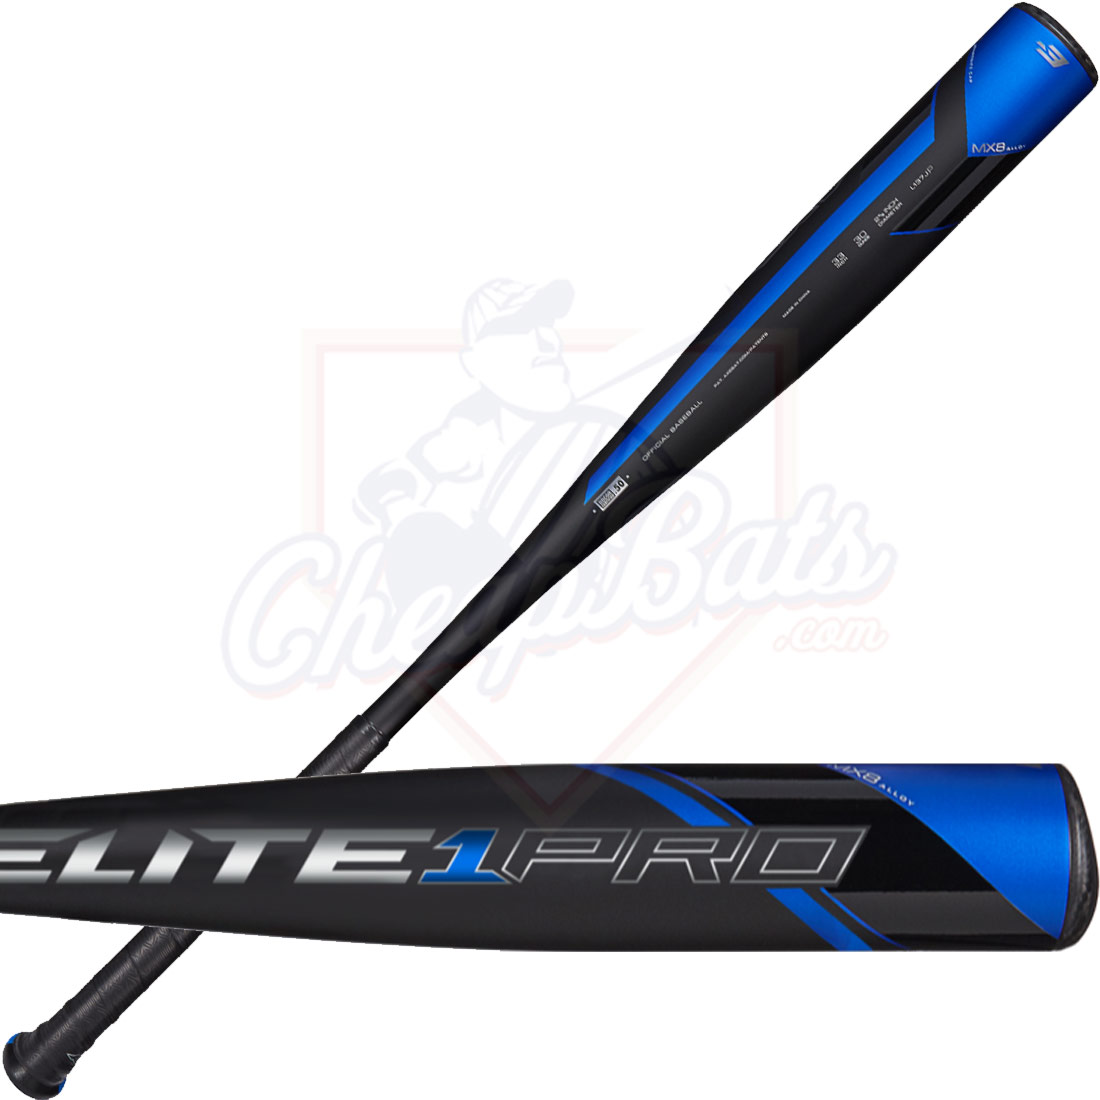 2022 Axe Elite 1 Pro BBCOR Baseball Bat -3oz L137JP